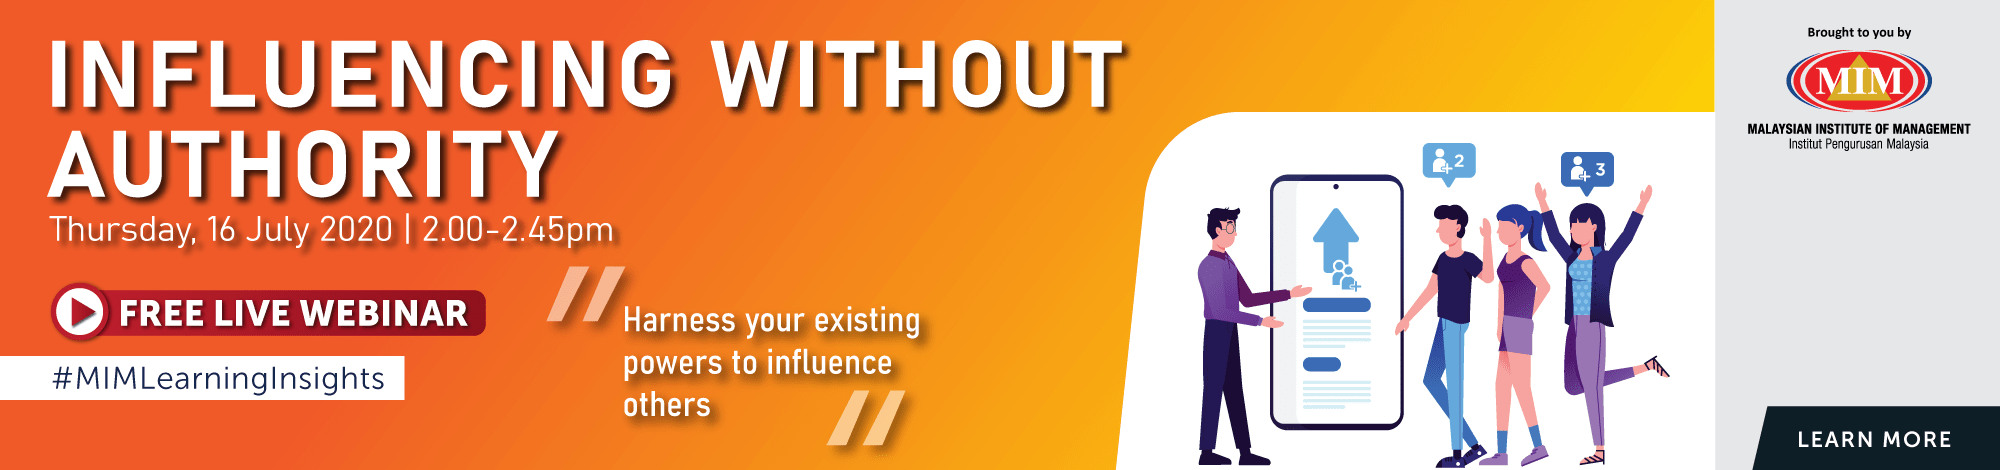 Influencing-Without-Authority-Website-2000px-X-470